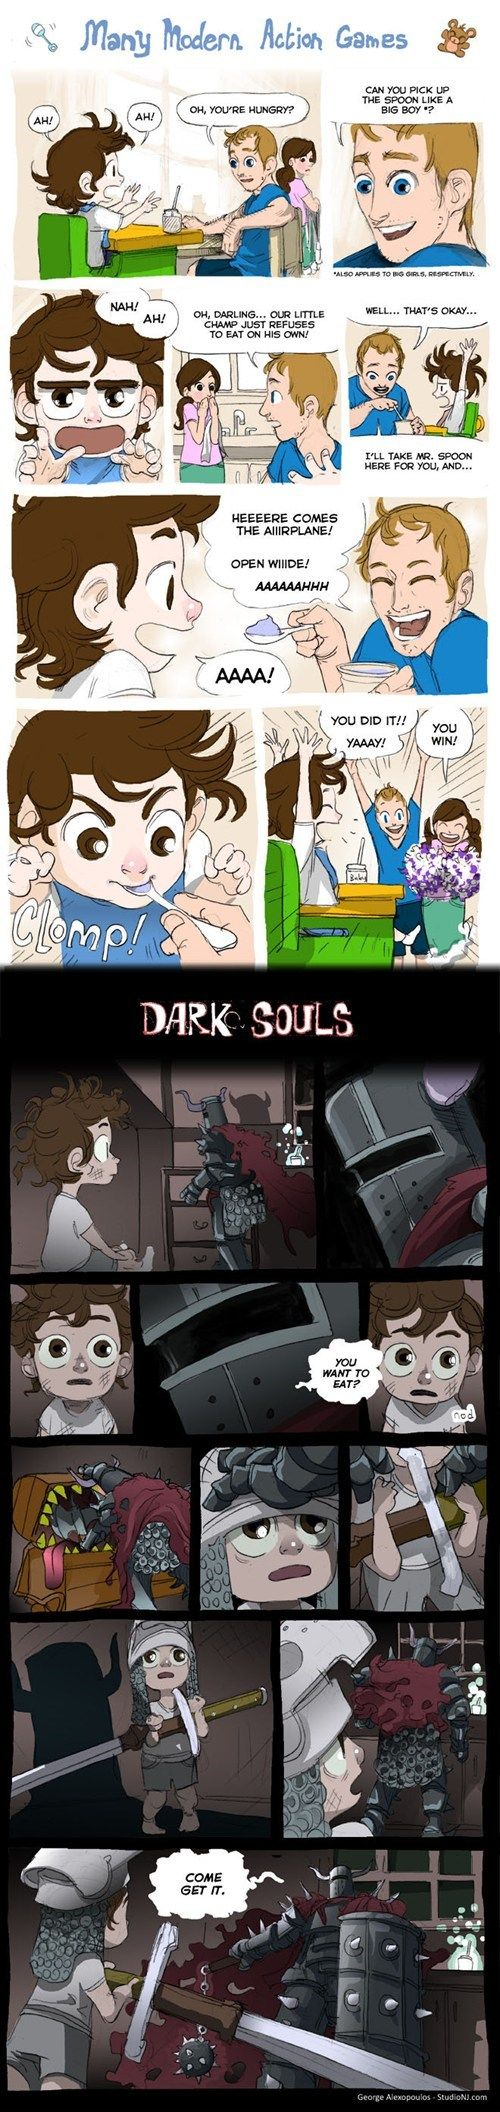 Why More Games Should Be Like Dark Souls